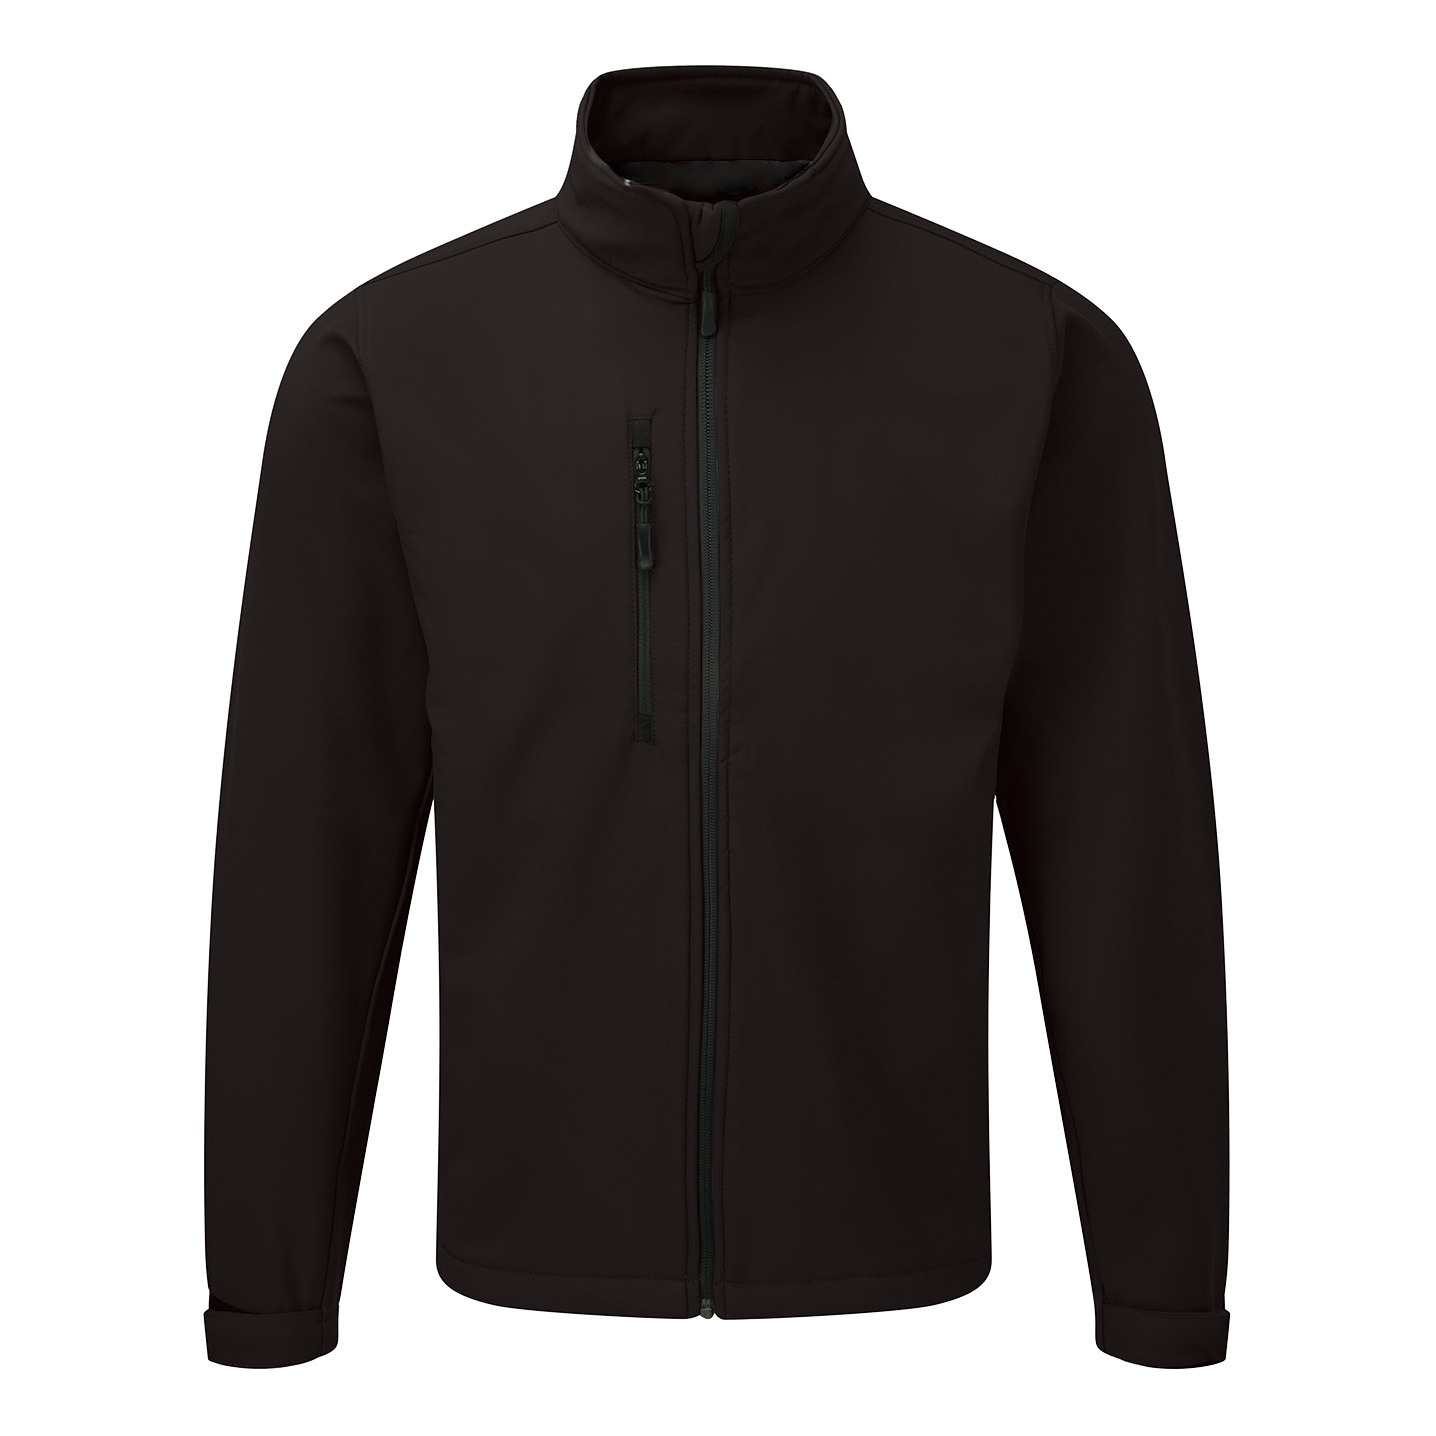 Jacket Soft Shell Water Resistant Breathable 320gsm Size 3XL Black